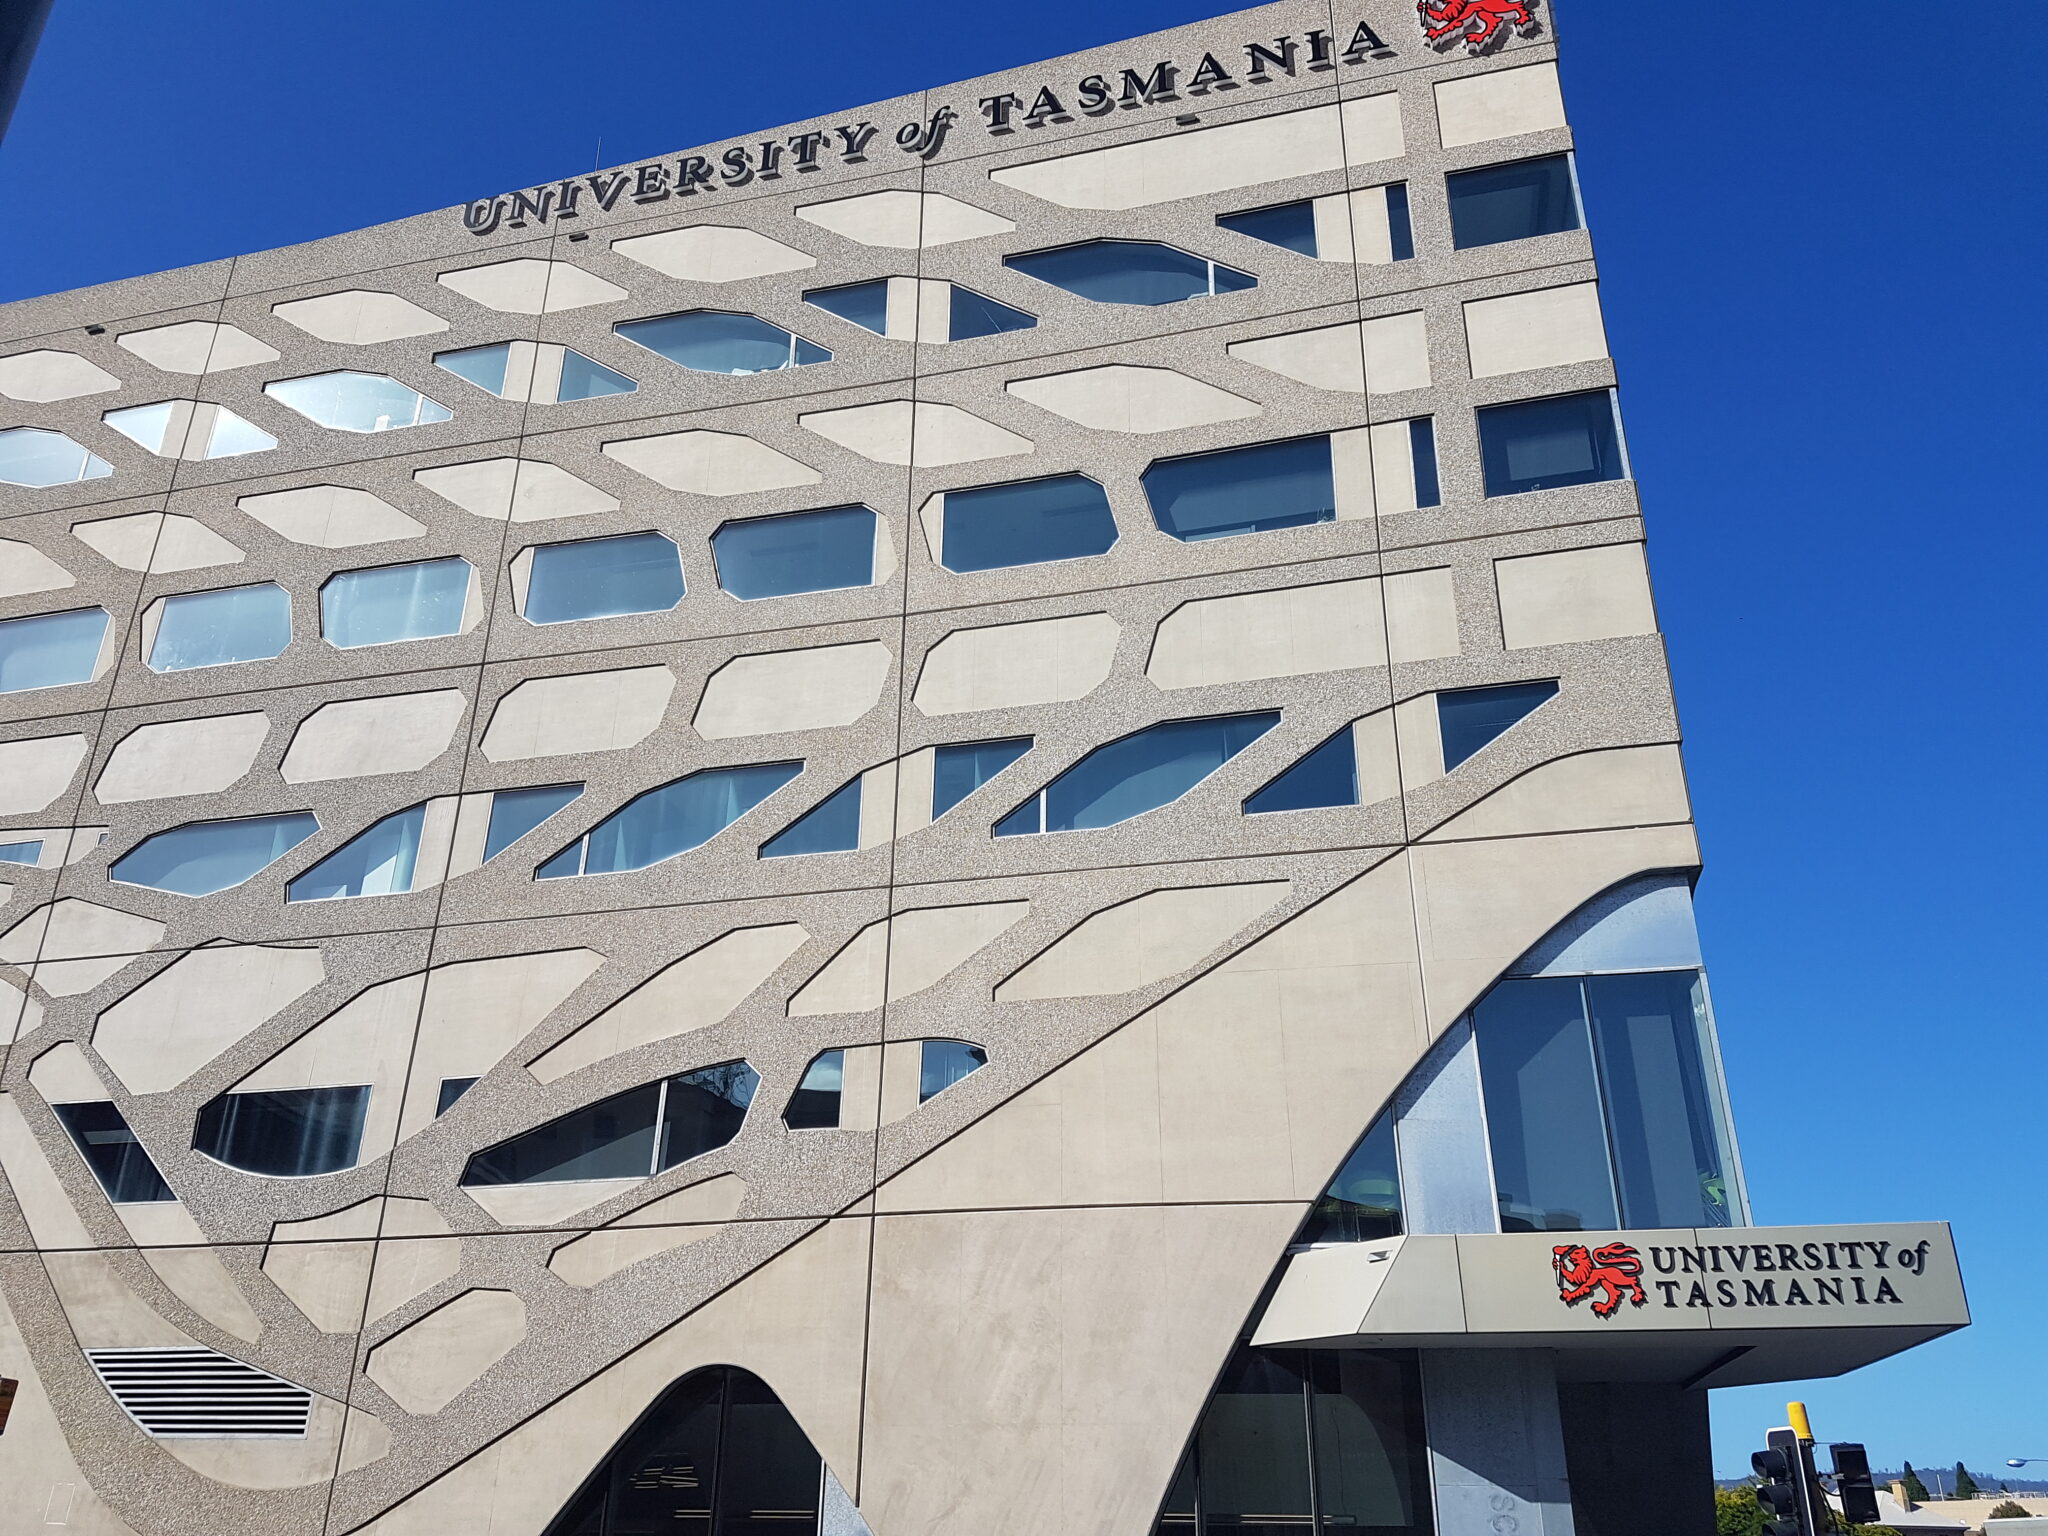 Today's University of Tasmania - Medical Science Precinct